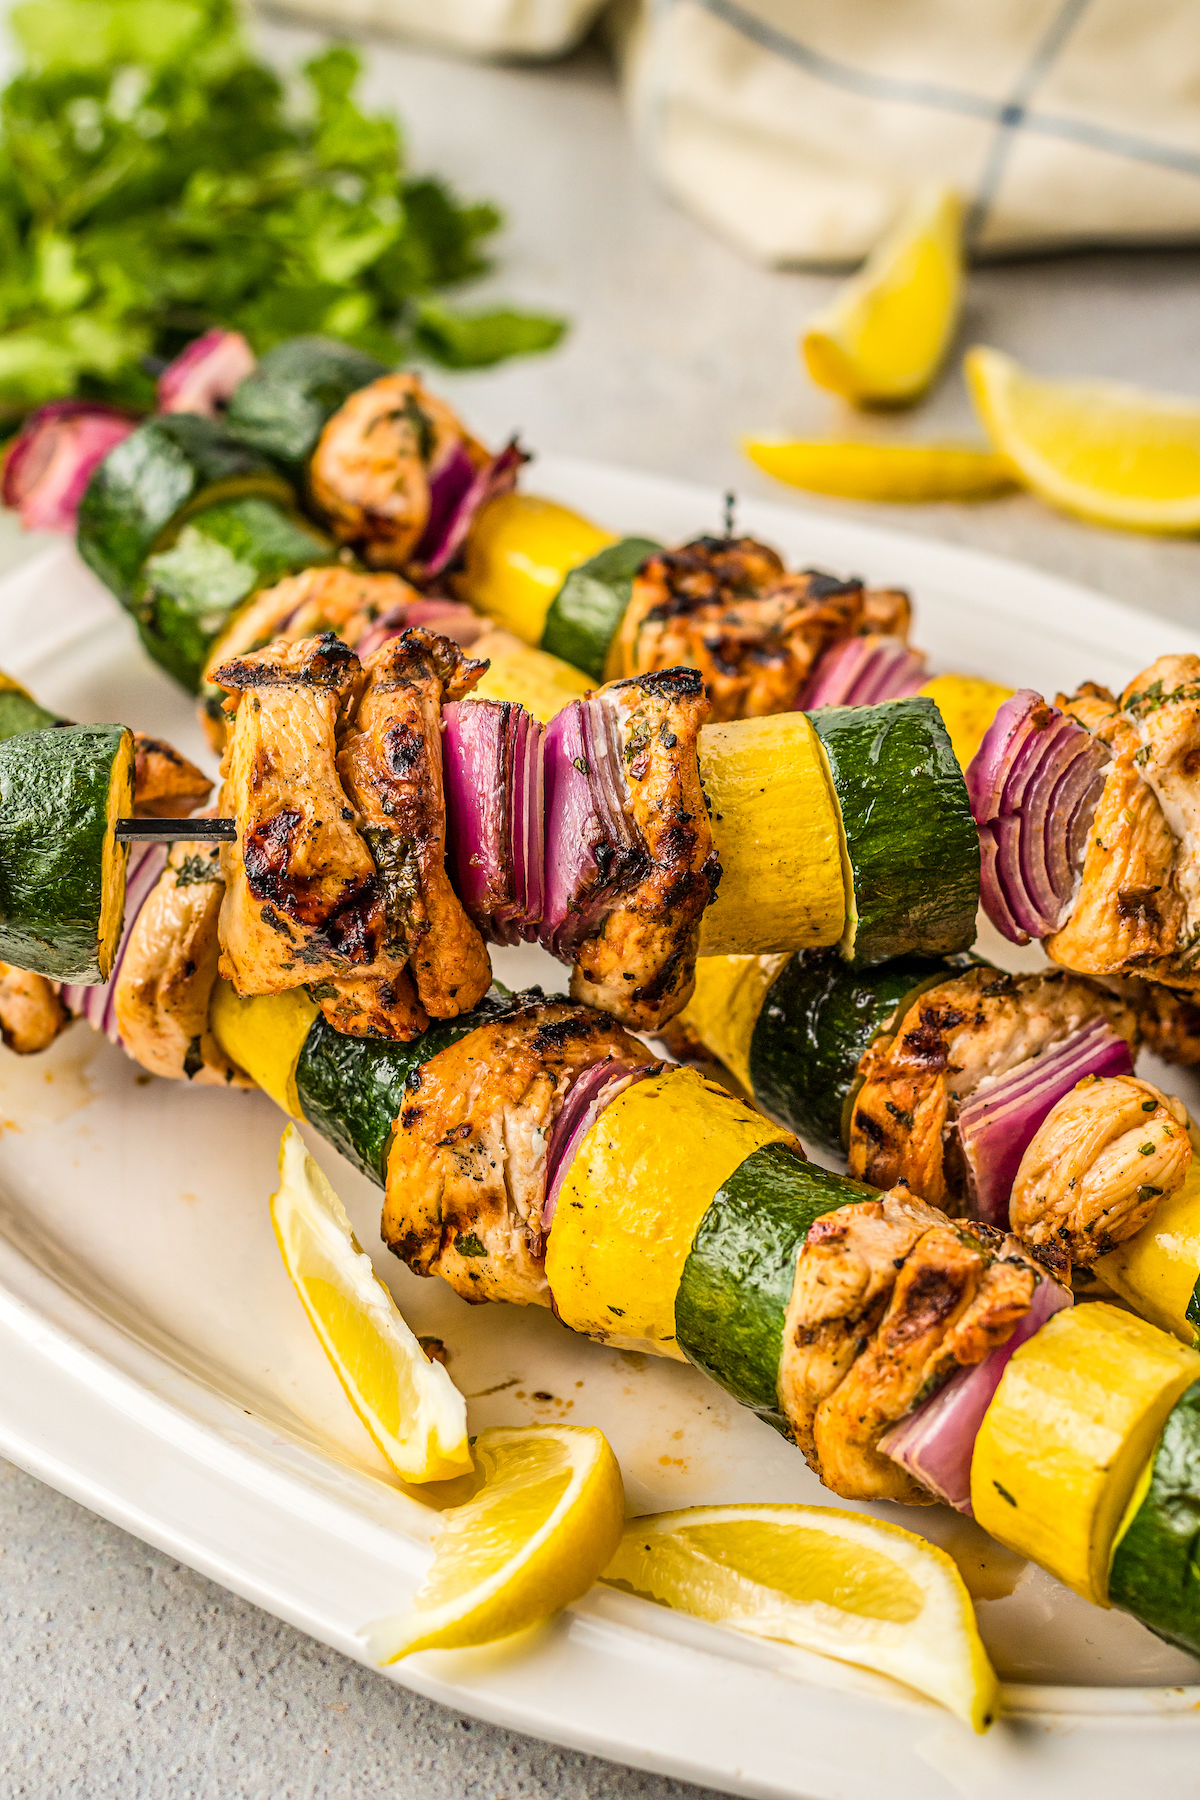 Plate of marinated chicken kabobs.